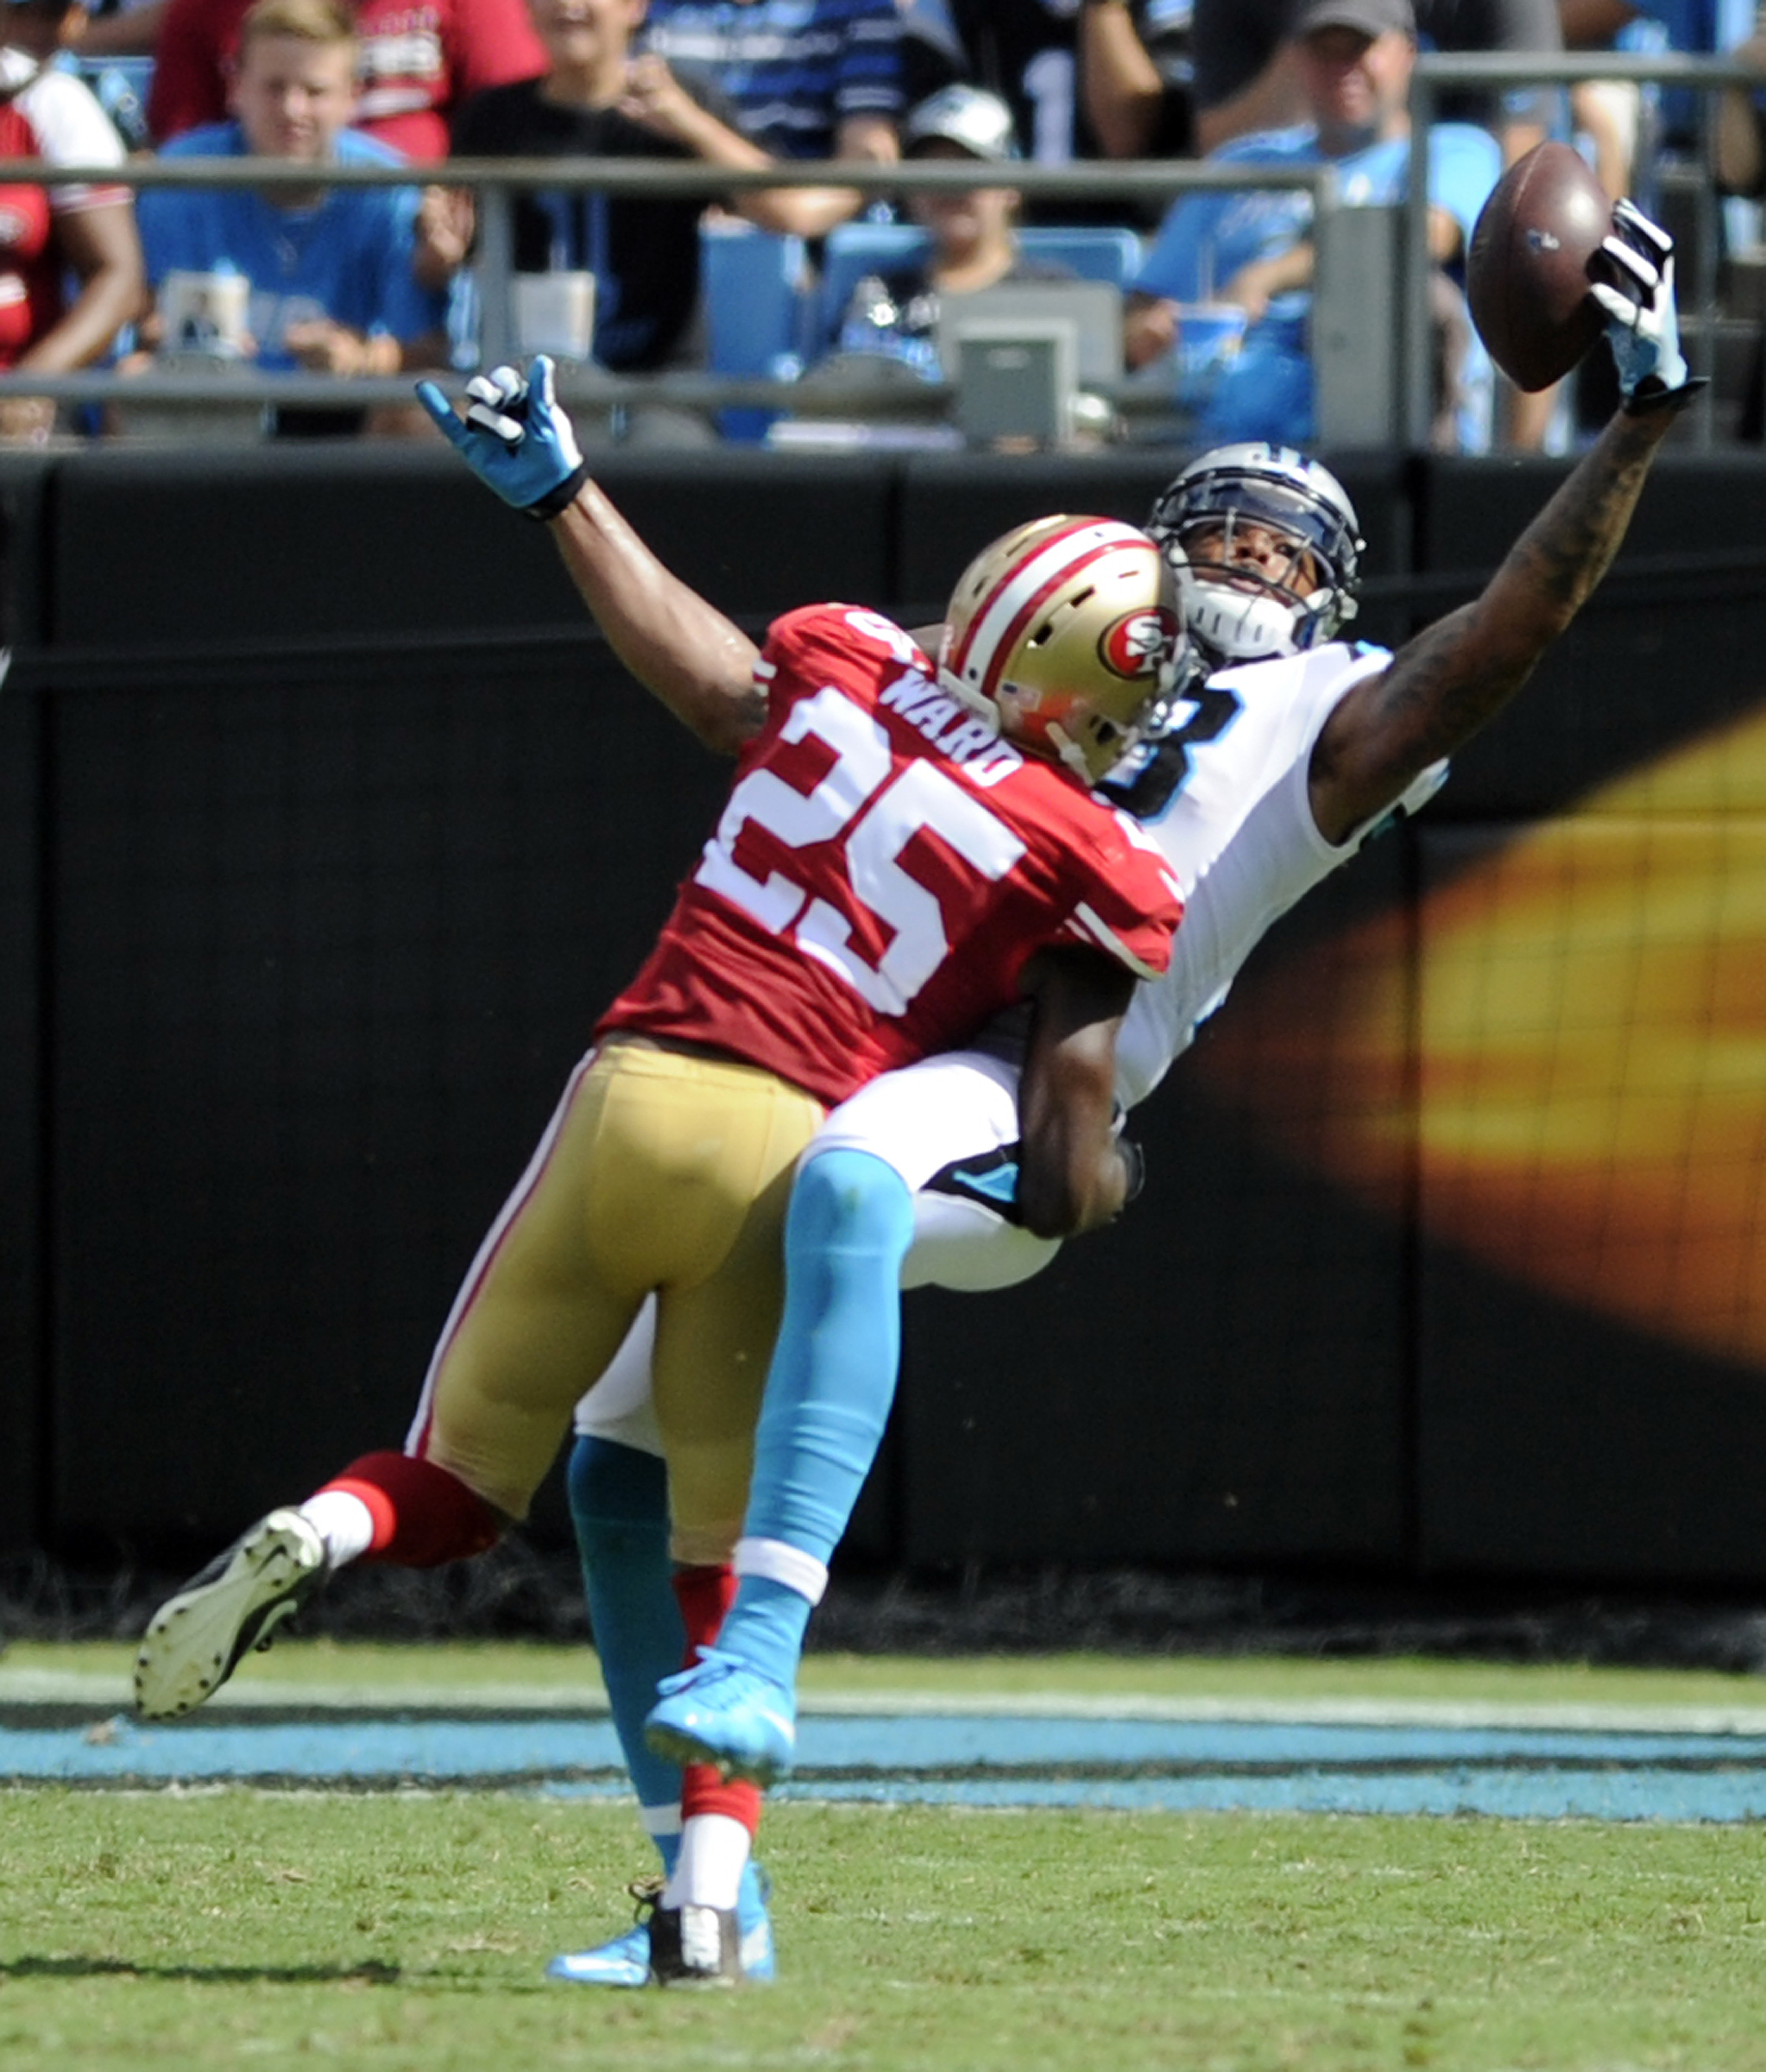 Carolina Panthers' Kelvin Benjamin, back, catches a pass as San Francisco 49ers' Jimmie Ward, front, defends in the second half of an NFL football game in Charlotte, N.C., Sunday, Sept. 18, 2016. (AP Photo/Mike McCarn)